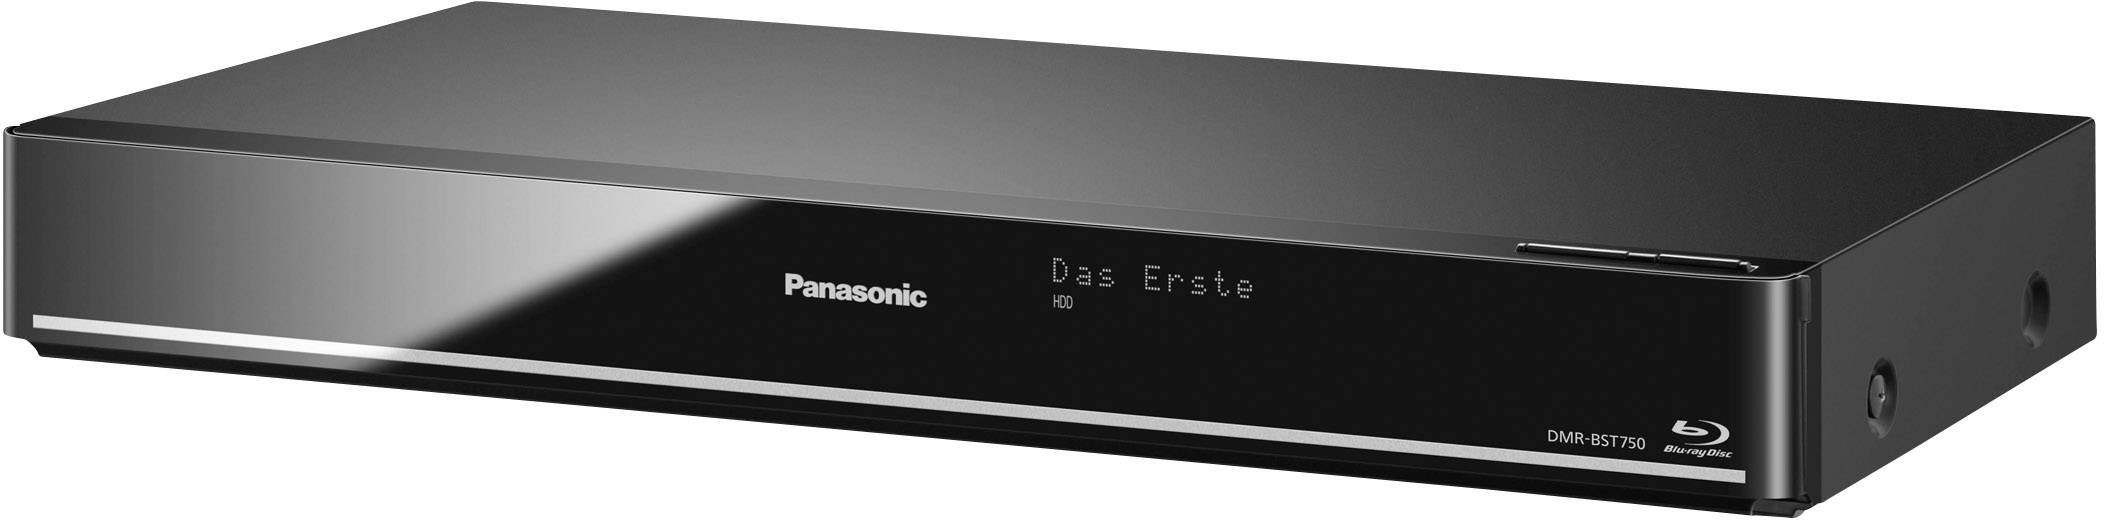 Panasonic DMR-BST750EG Recorder Drivers for Windows 7